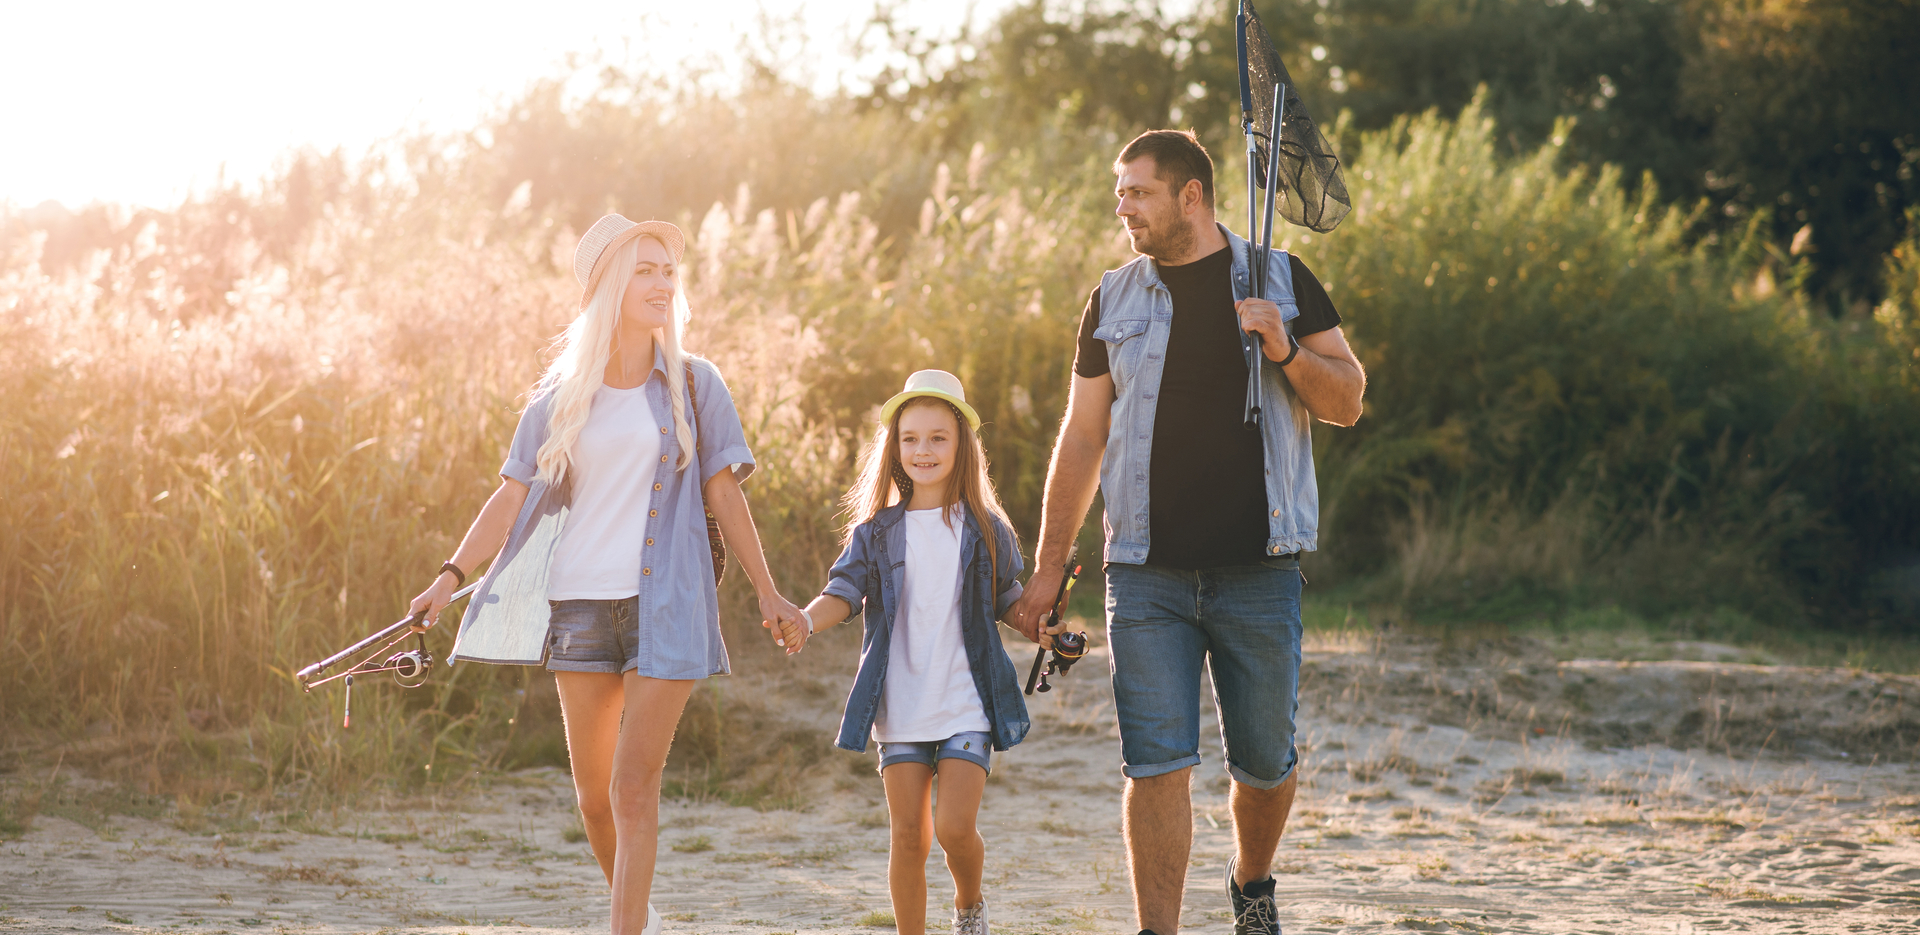 Weekend Adventure Ideas for 2019 with Family – Club Mahindra